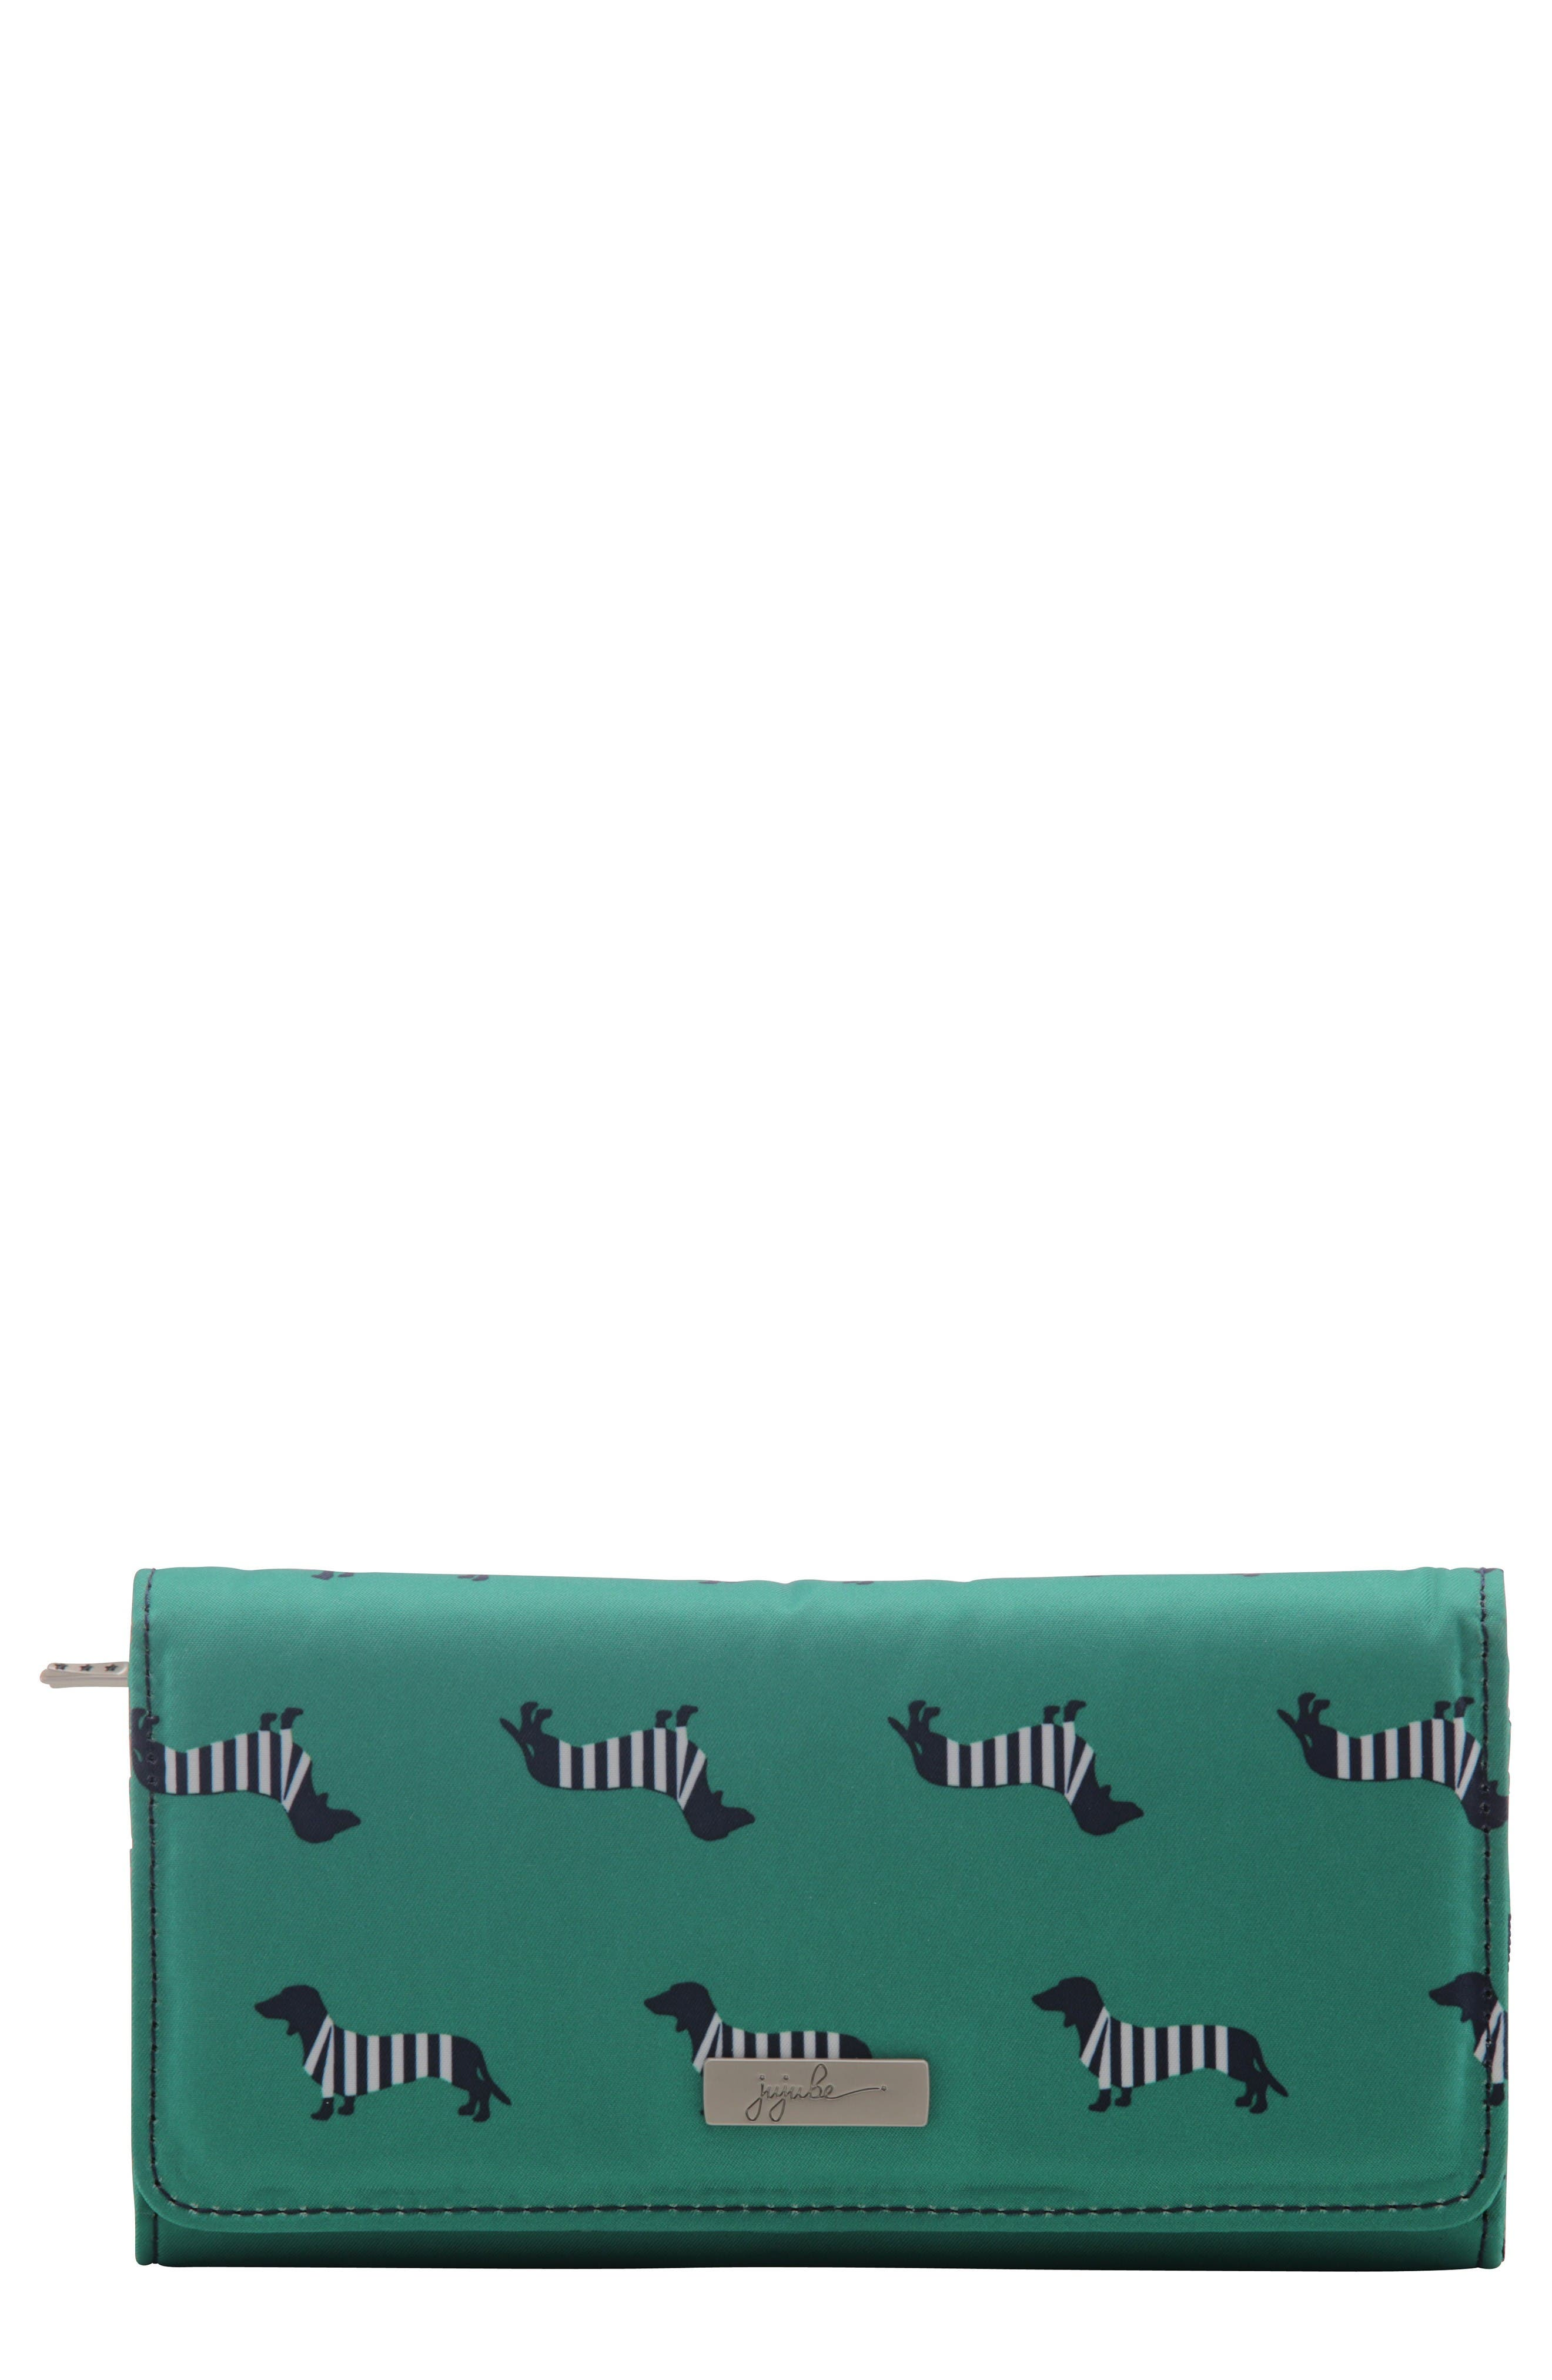 Be Rich - Coastal Collection Trifold Clutch Wallet,                             Main thumbnail 1, color,                             Coney Island